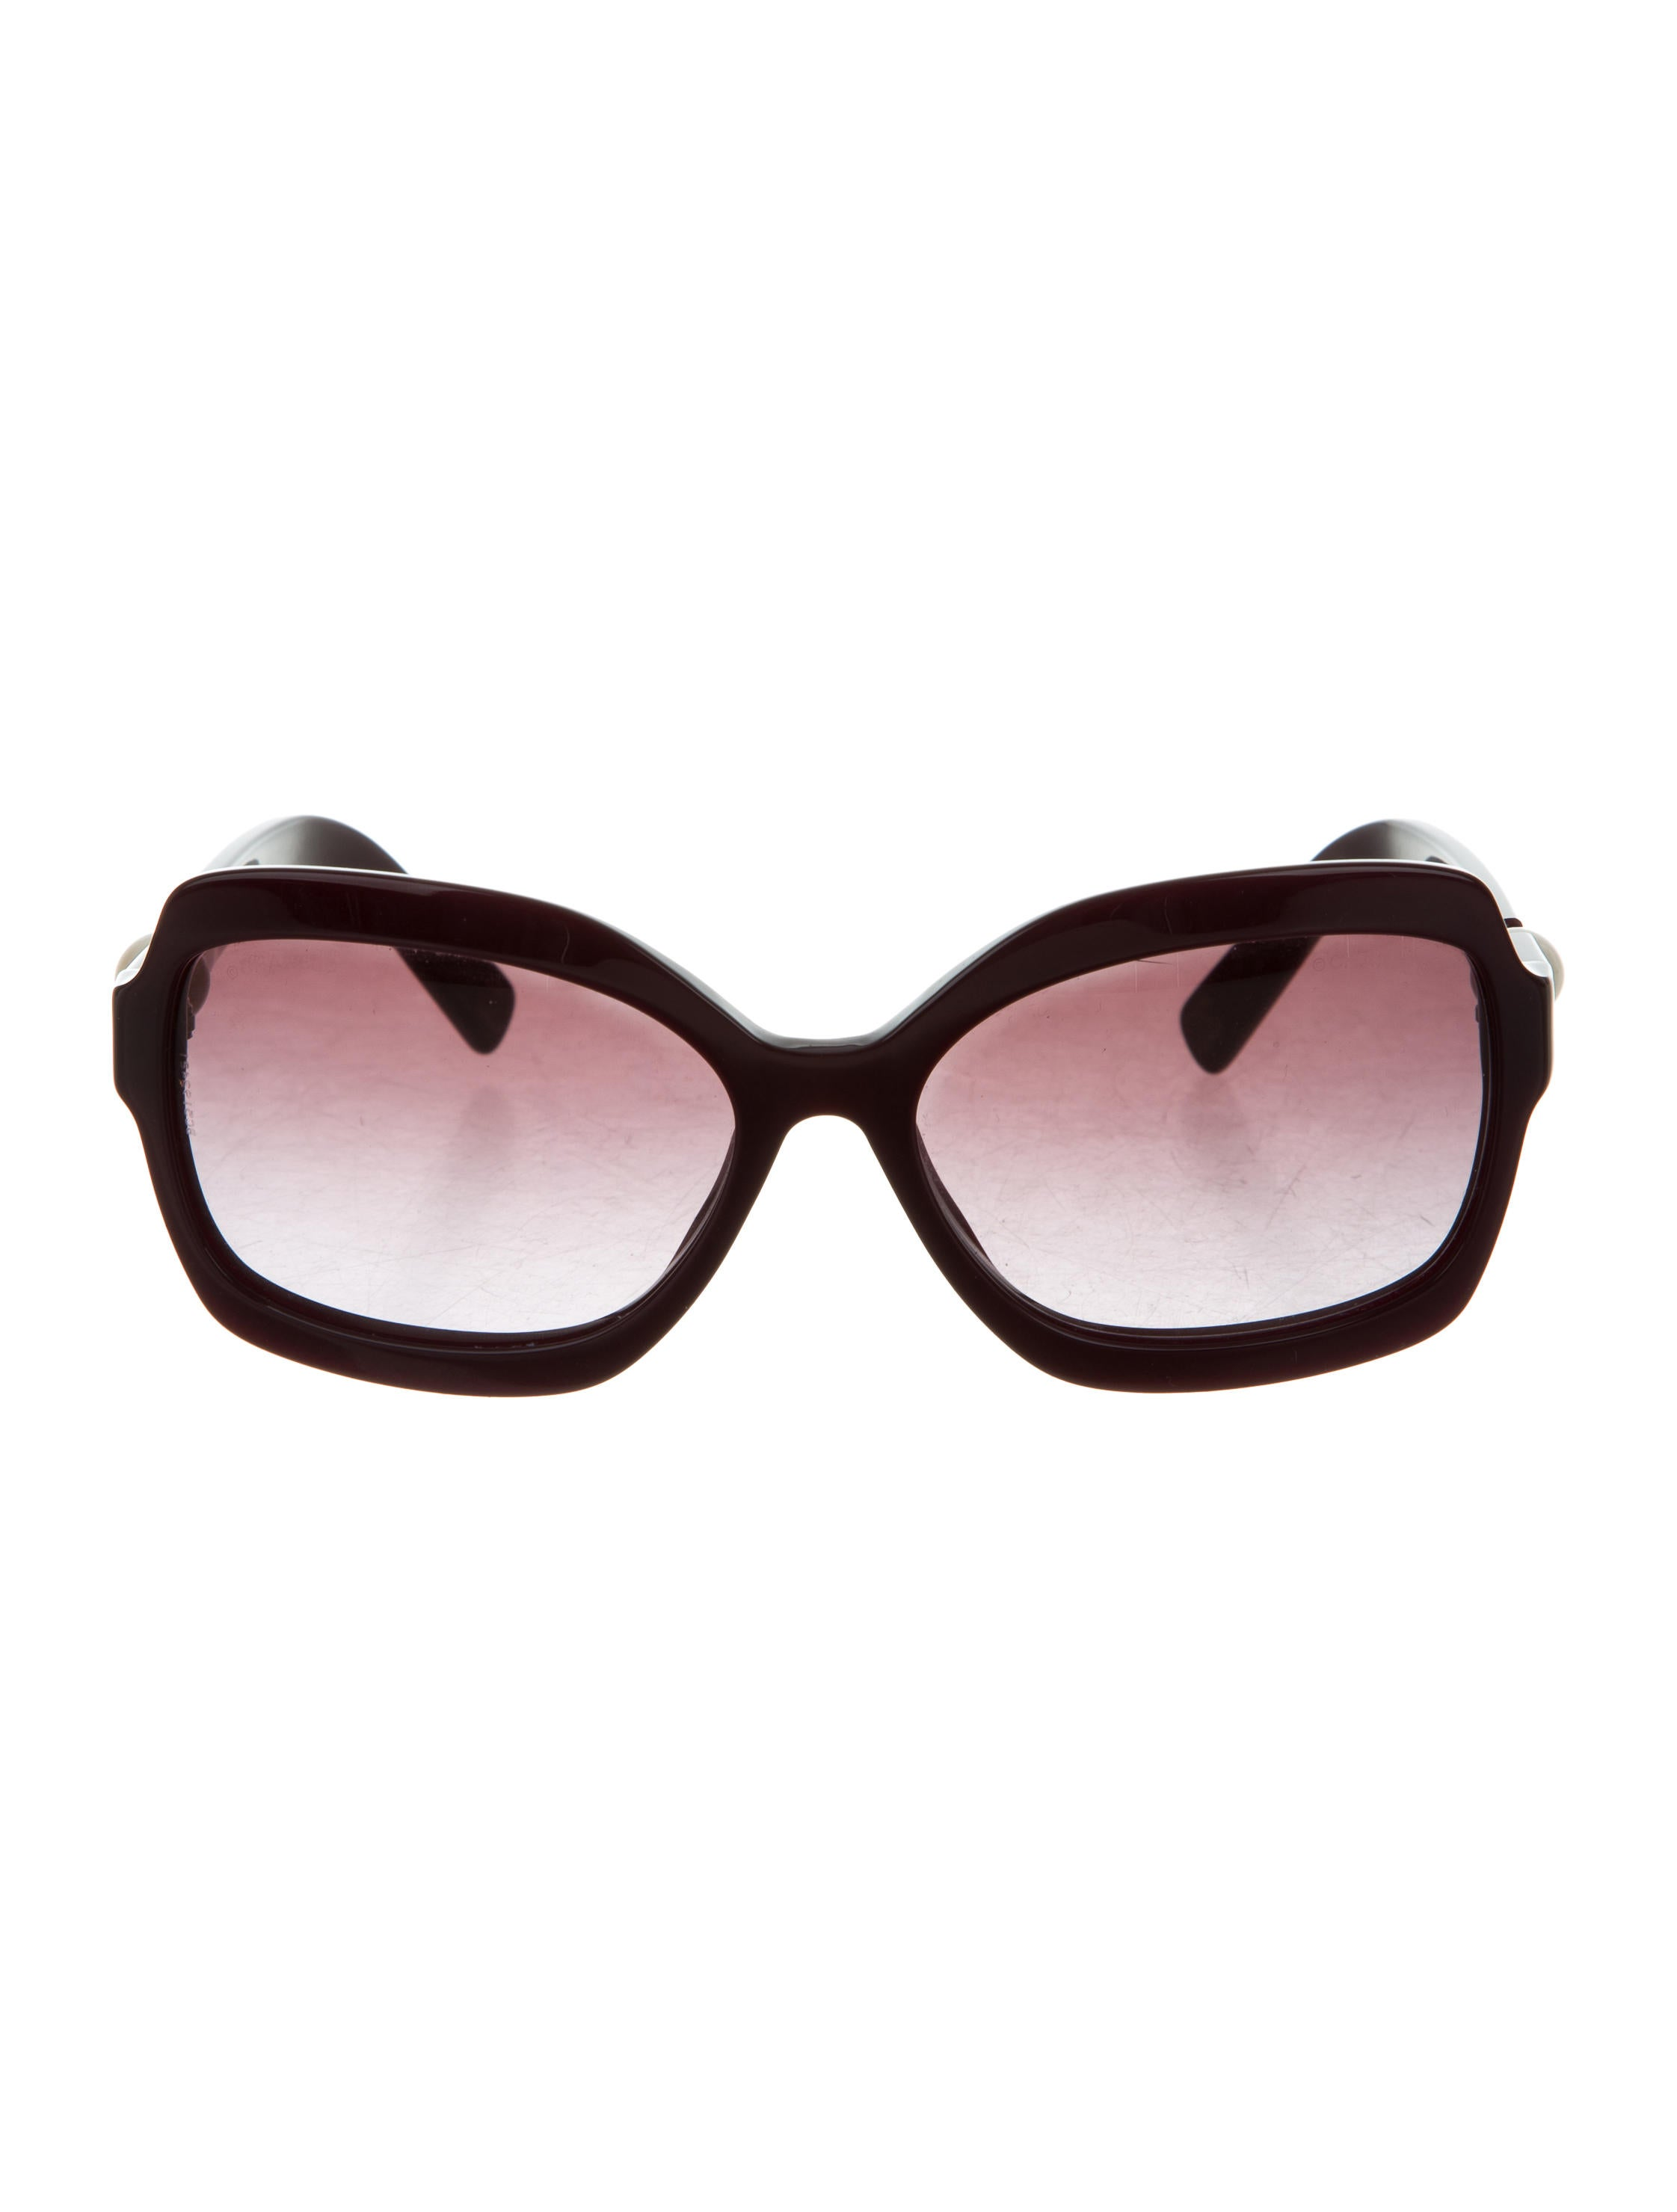 19d205dd3a4 Chanel Sunglasses Collection Perle